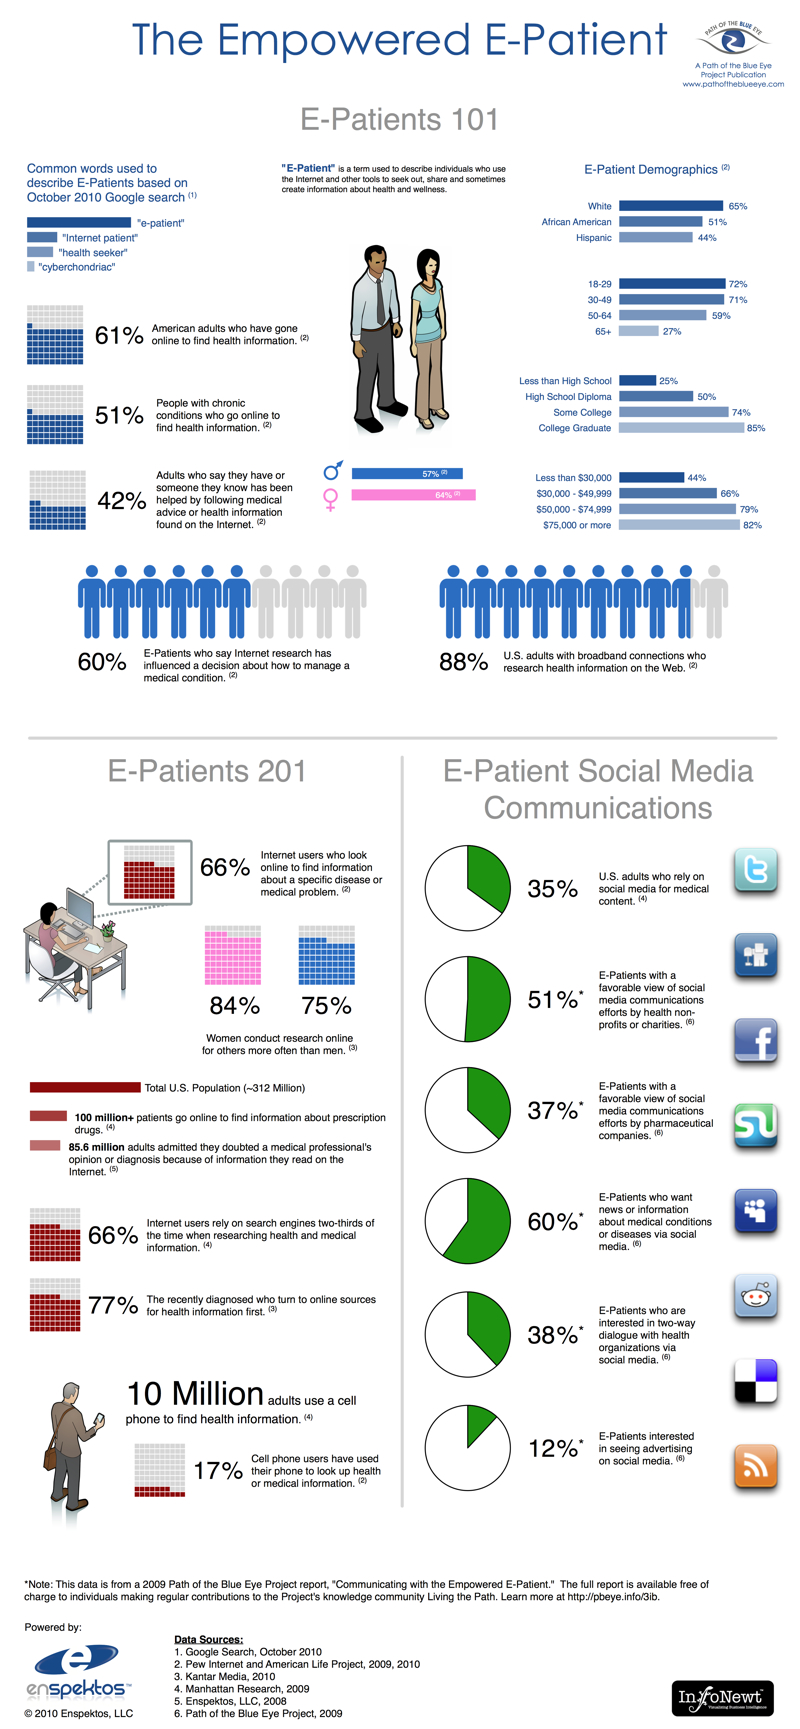 The Empowered E-Patient